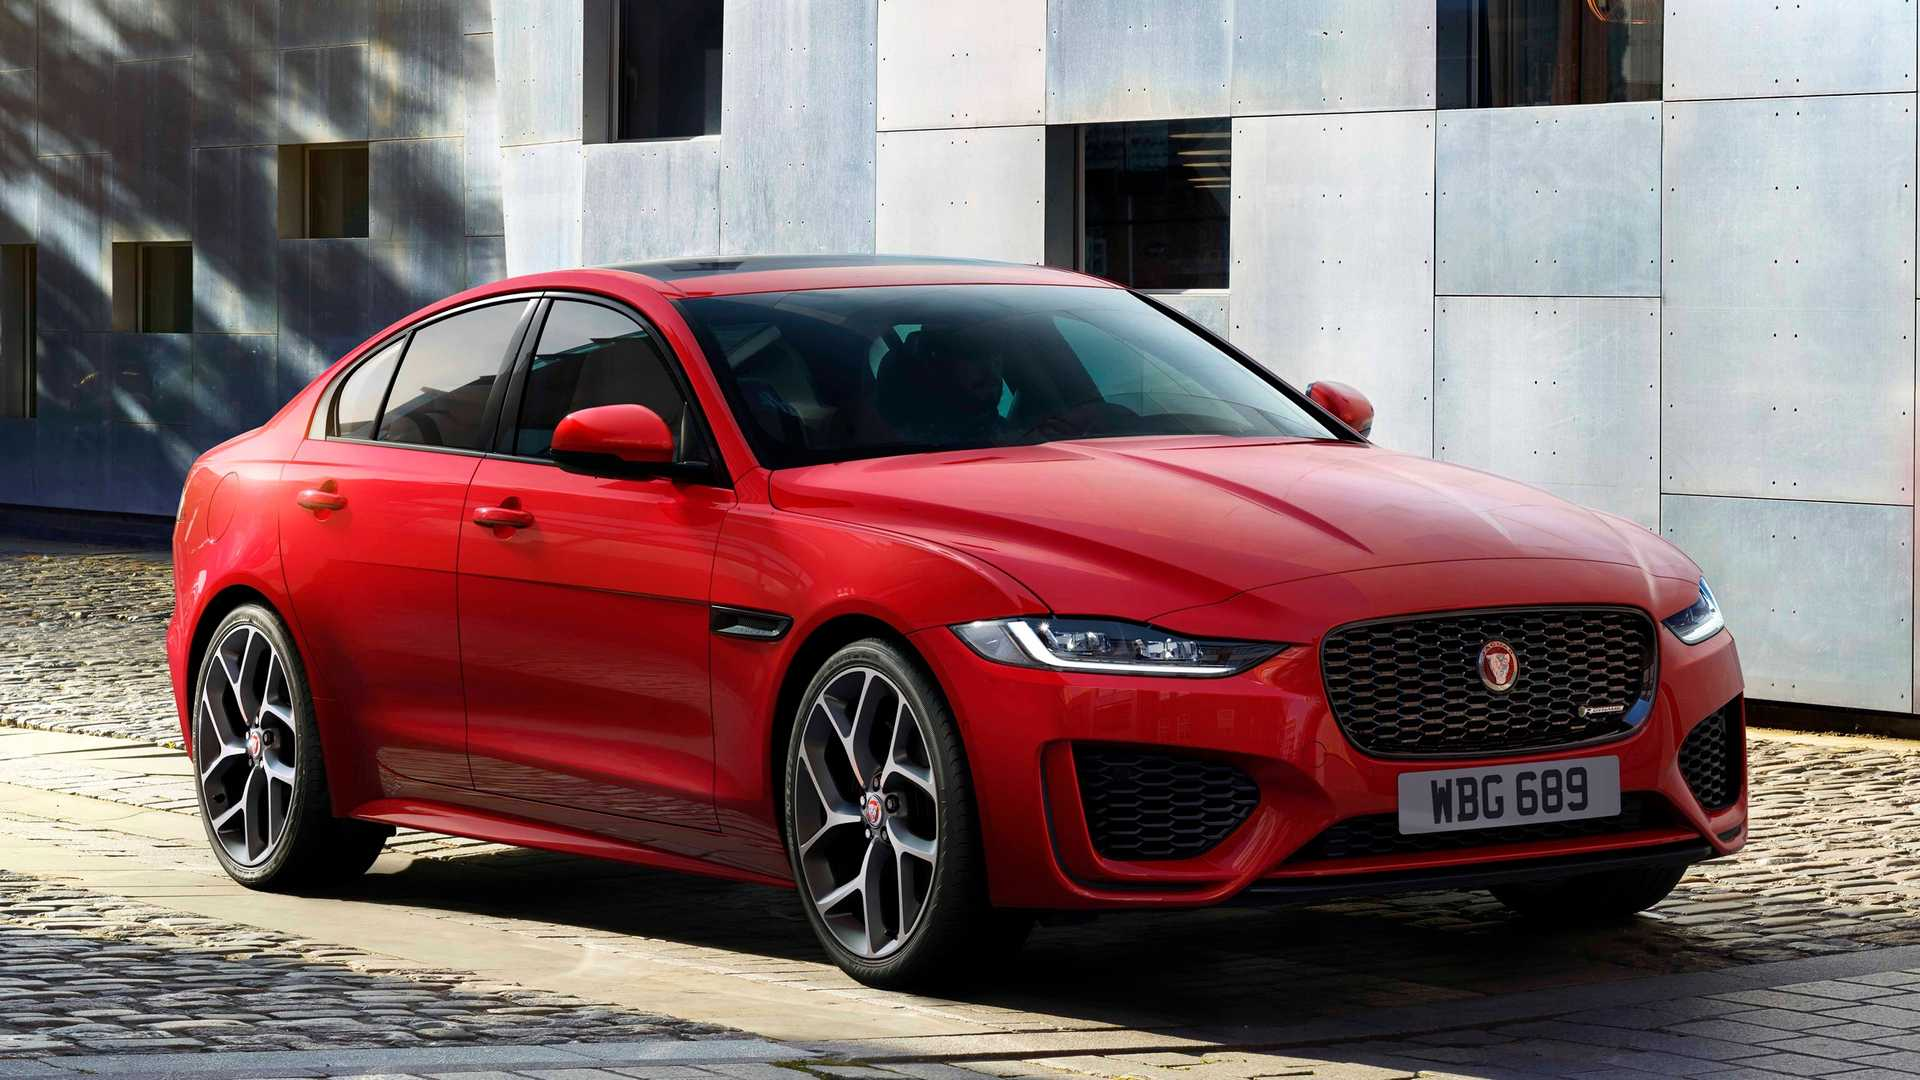 33 Great Jaguar Xe 2020 Launch Wallpaper for Jaguar Xe 2020 Launch